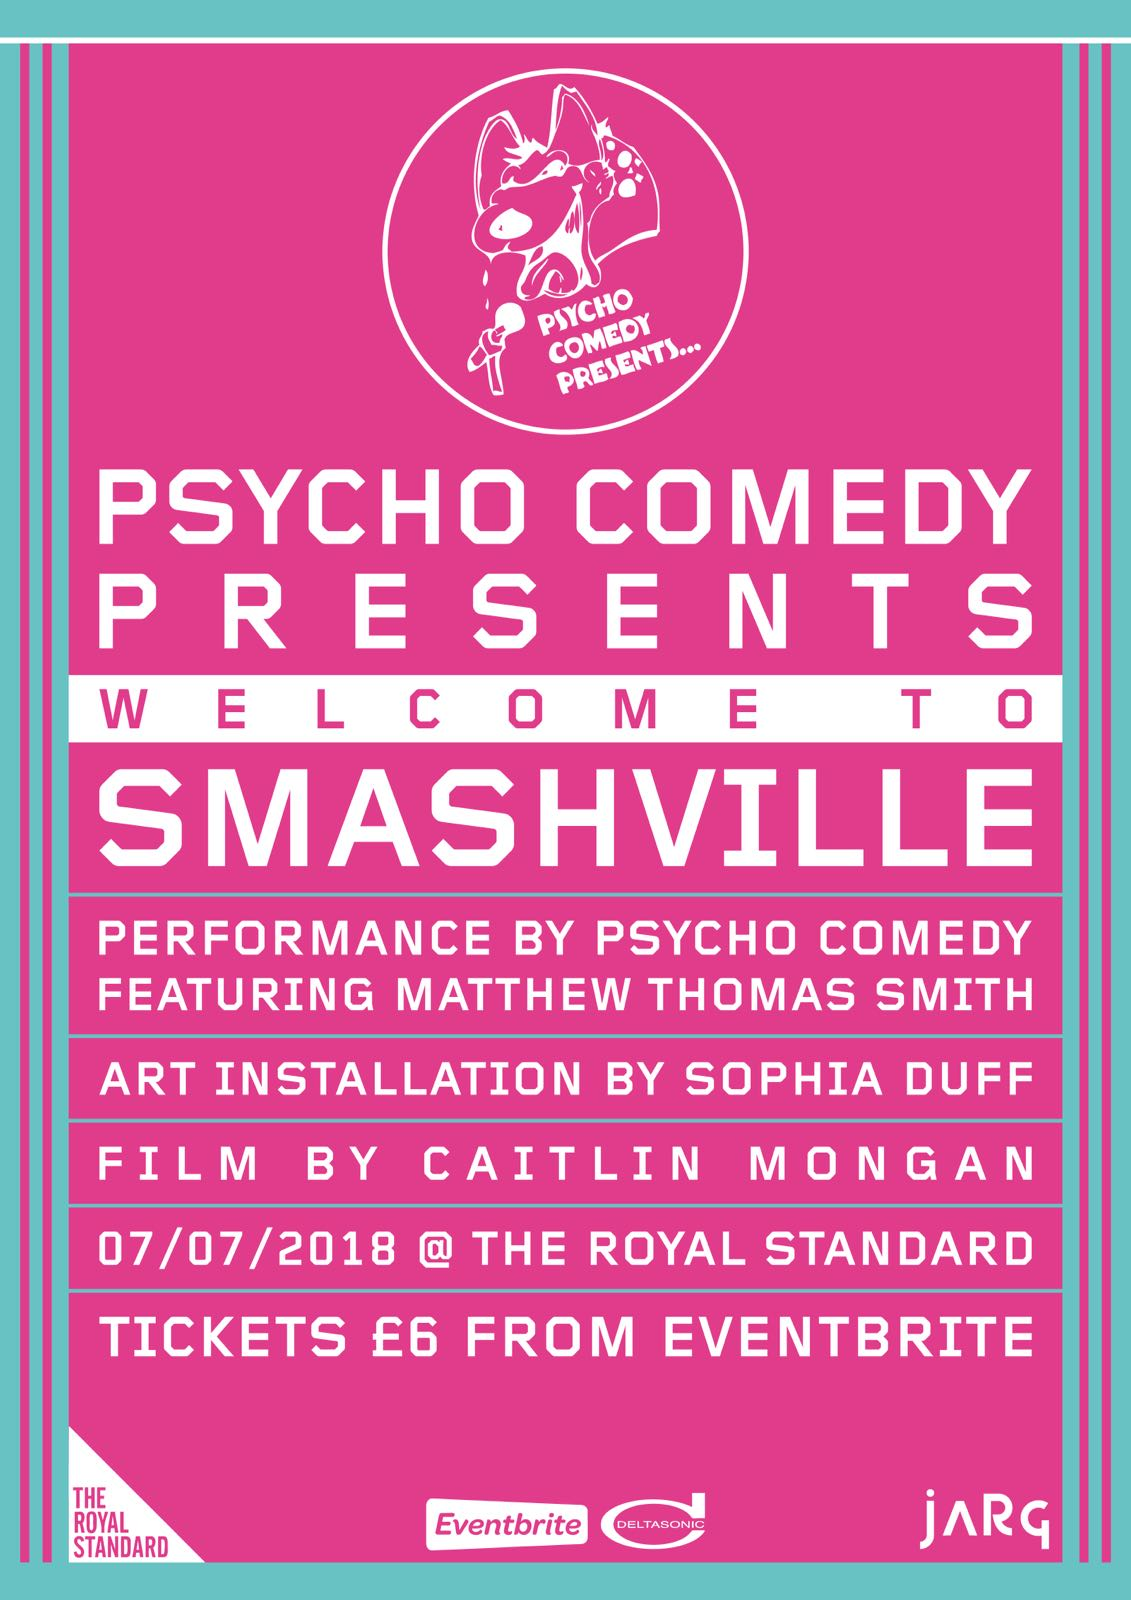 The Royal Standard: Psycho Comedy Presents: Welcome to